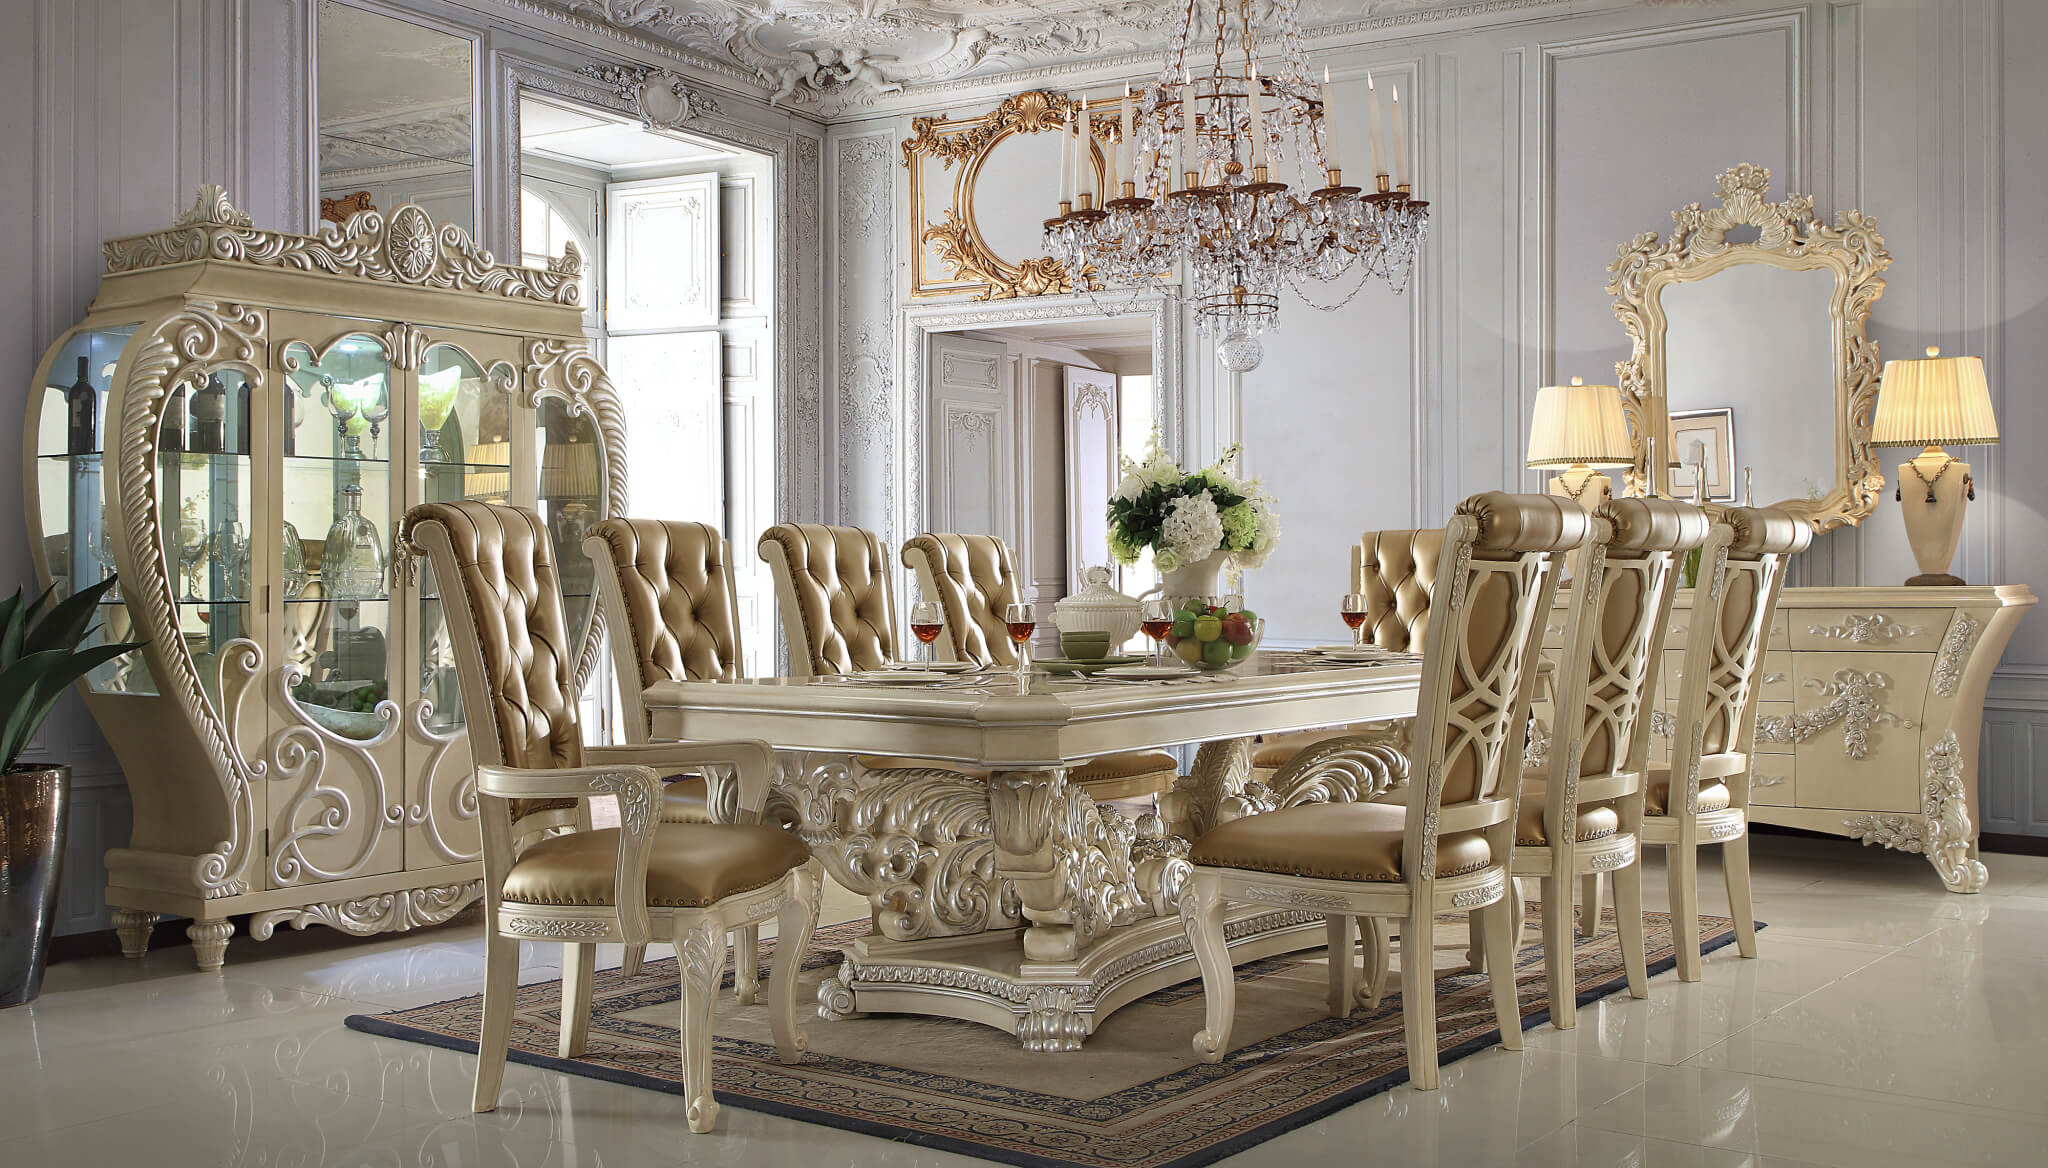 71 dining room furniture stores route 110 farmingdale for Home furniture galleries farmingdale